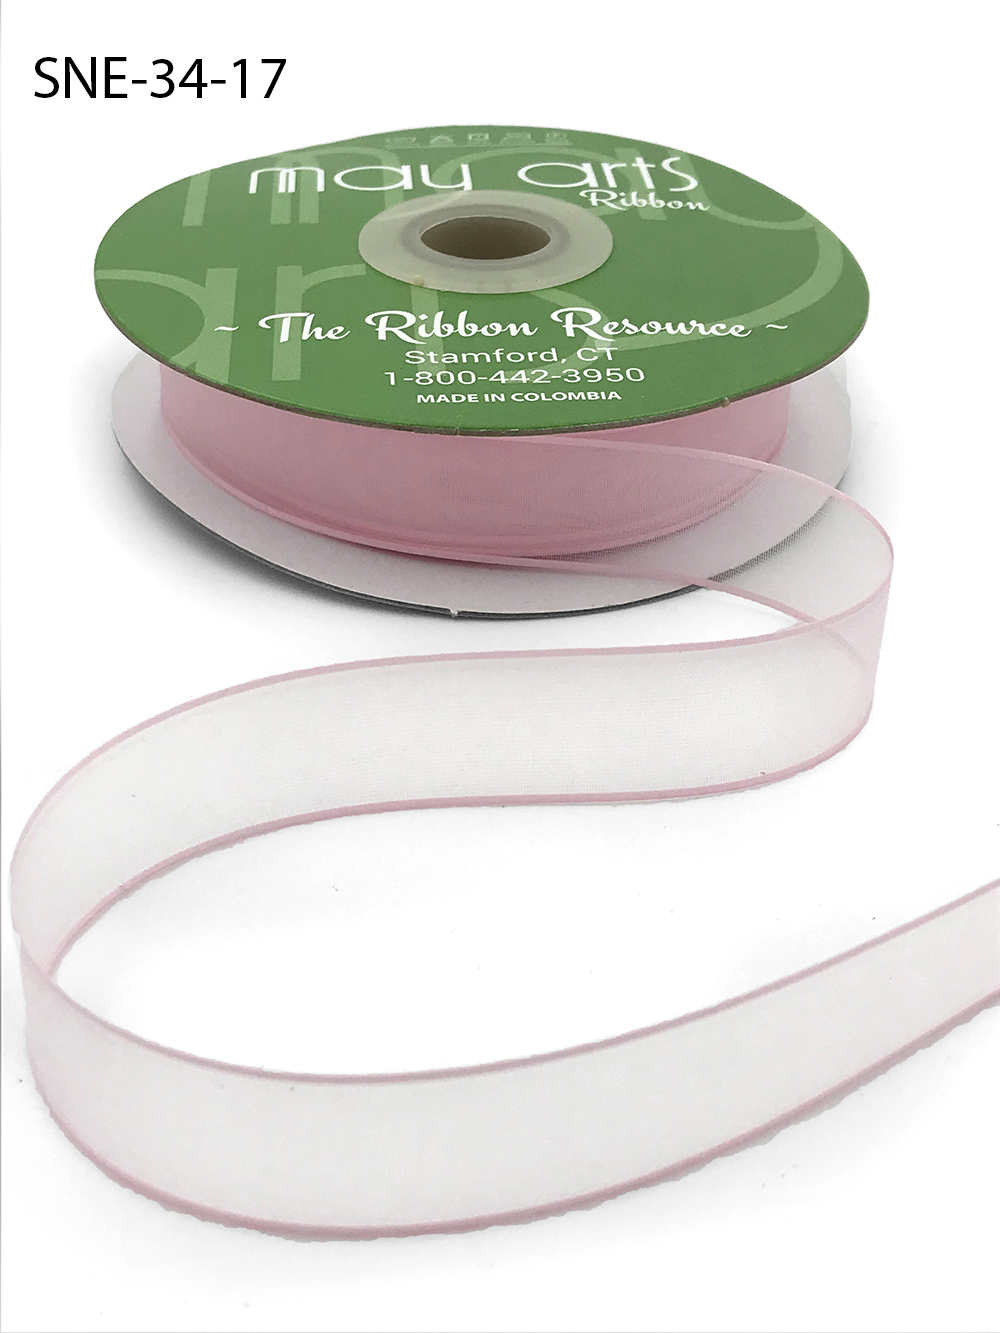 3/4 Inch Soft Sheer Ribbon with Thin Solid Edge - SNE-34-17 Light Pink